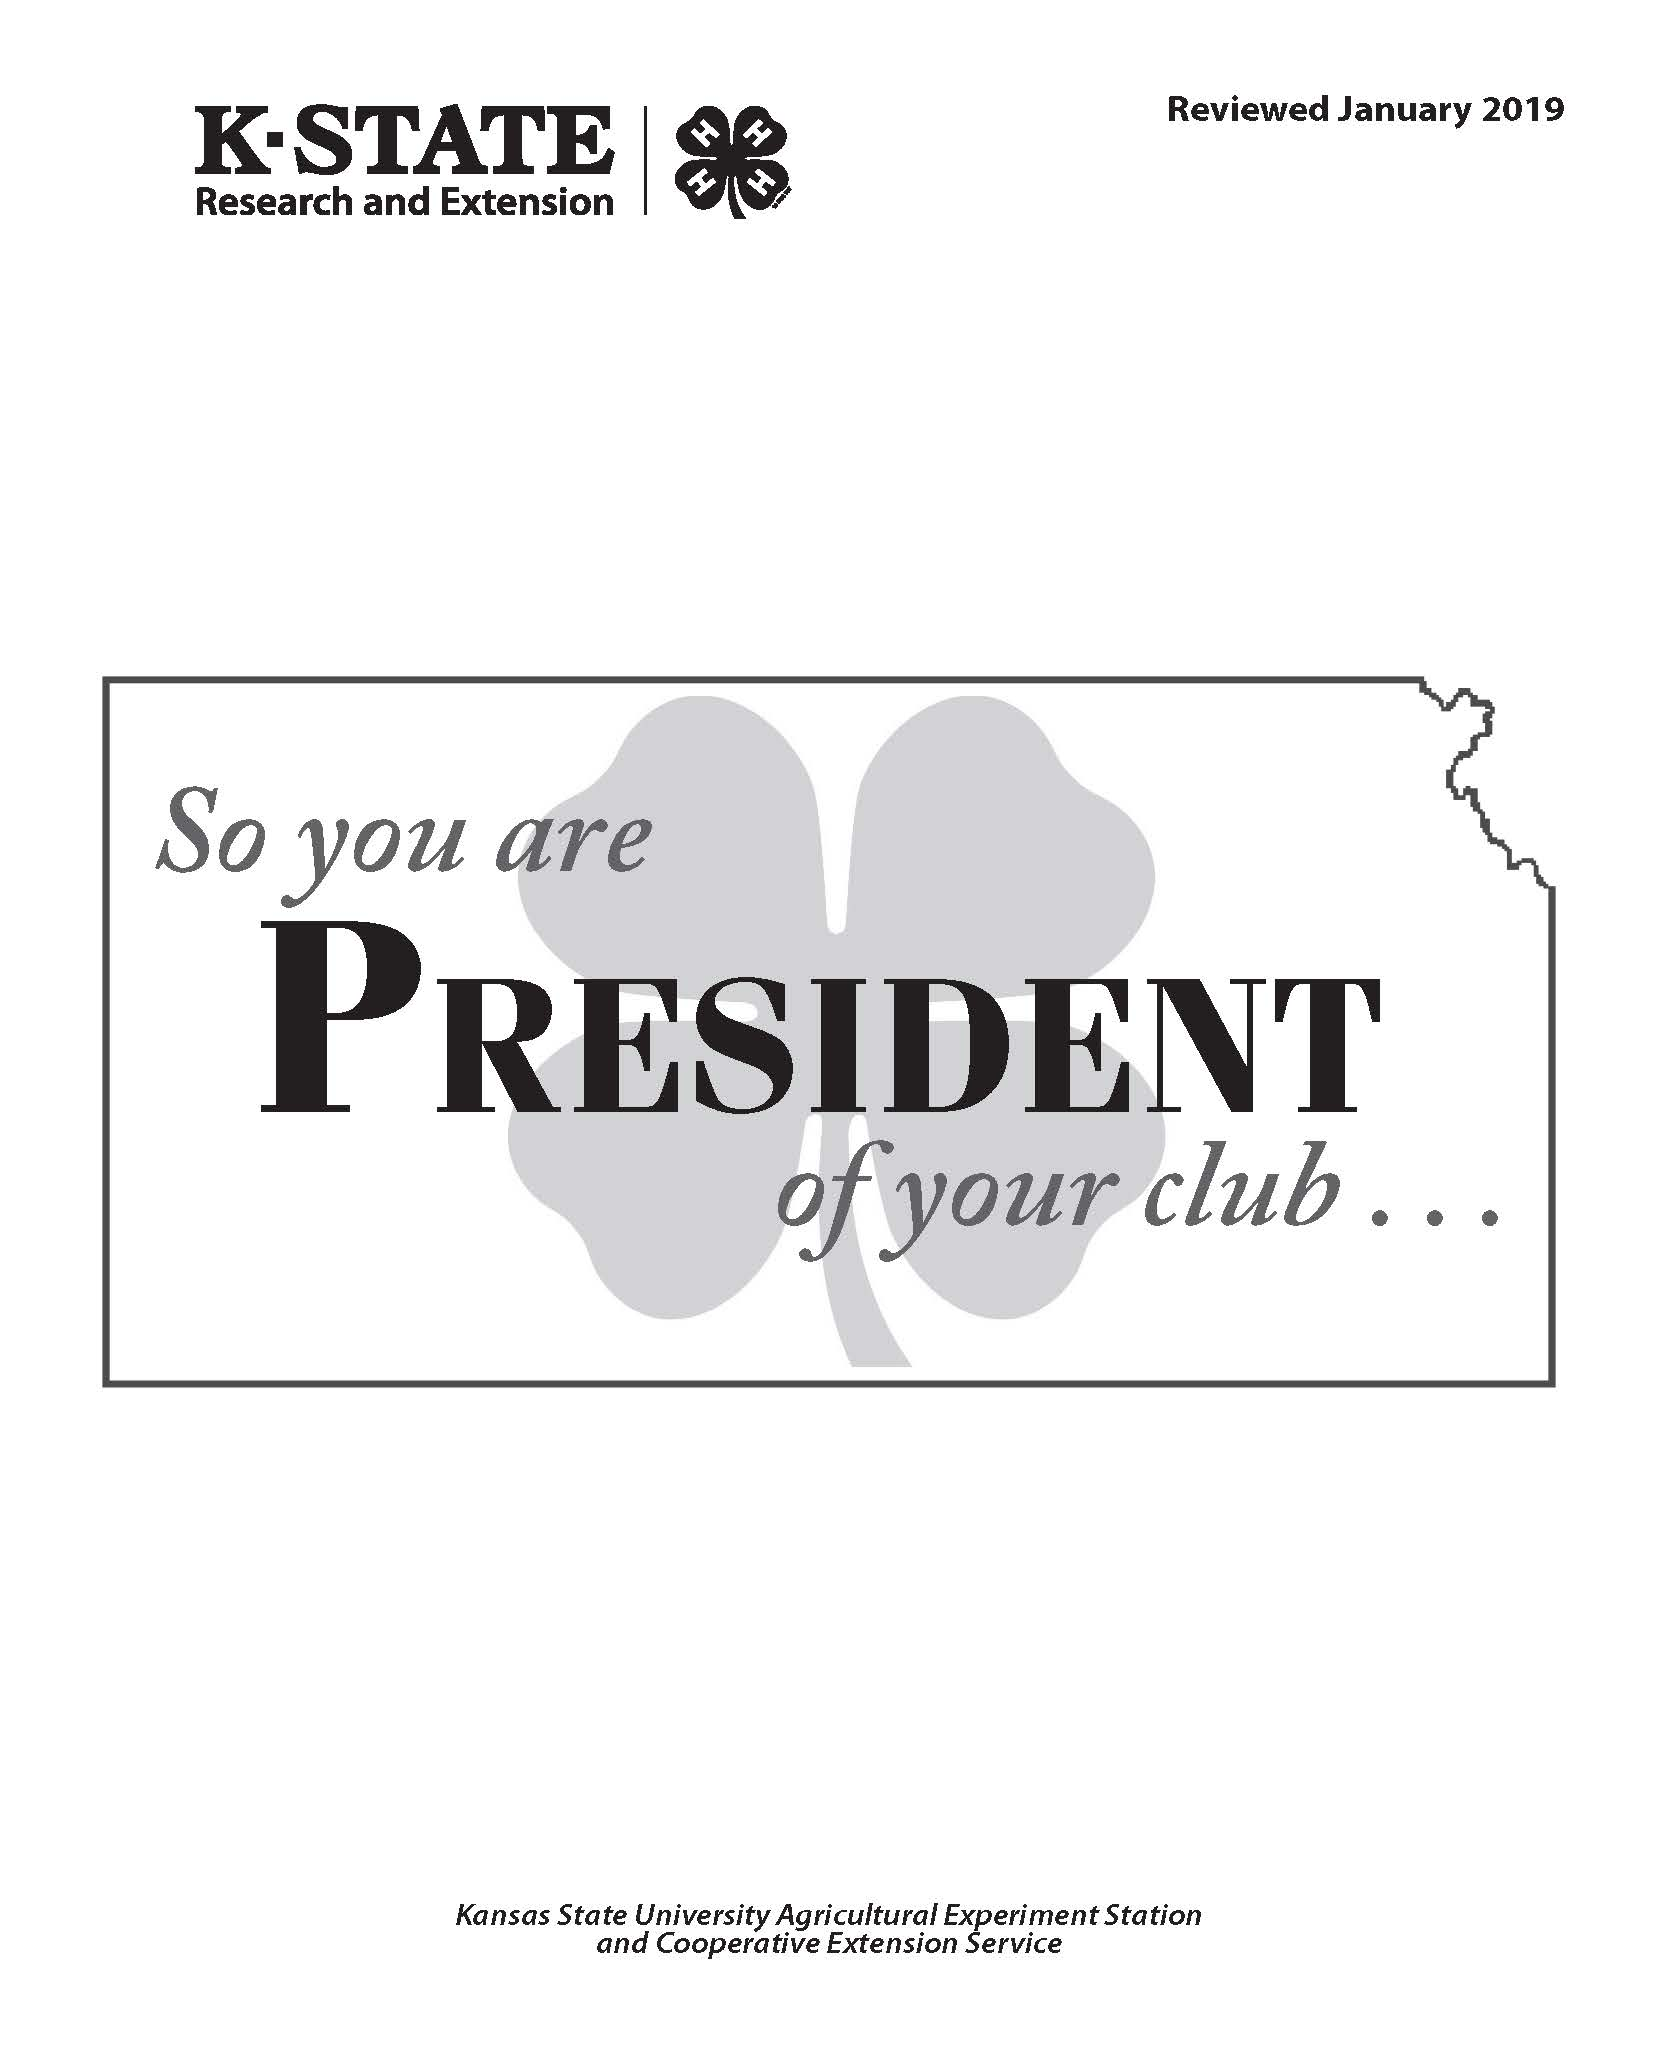 So you are President of your club